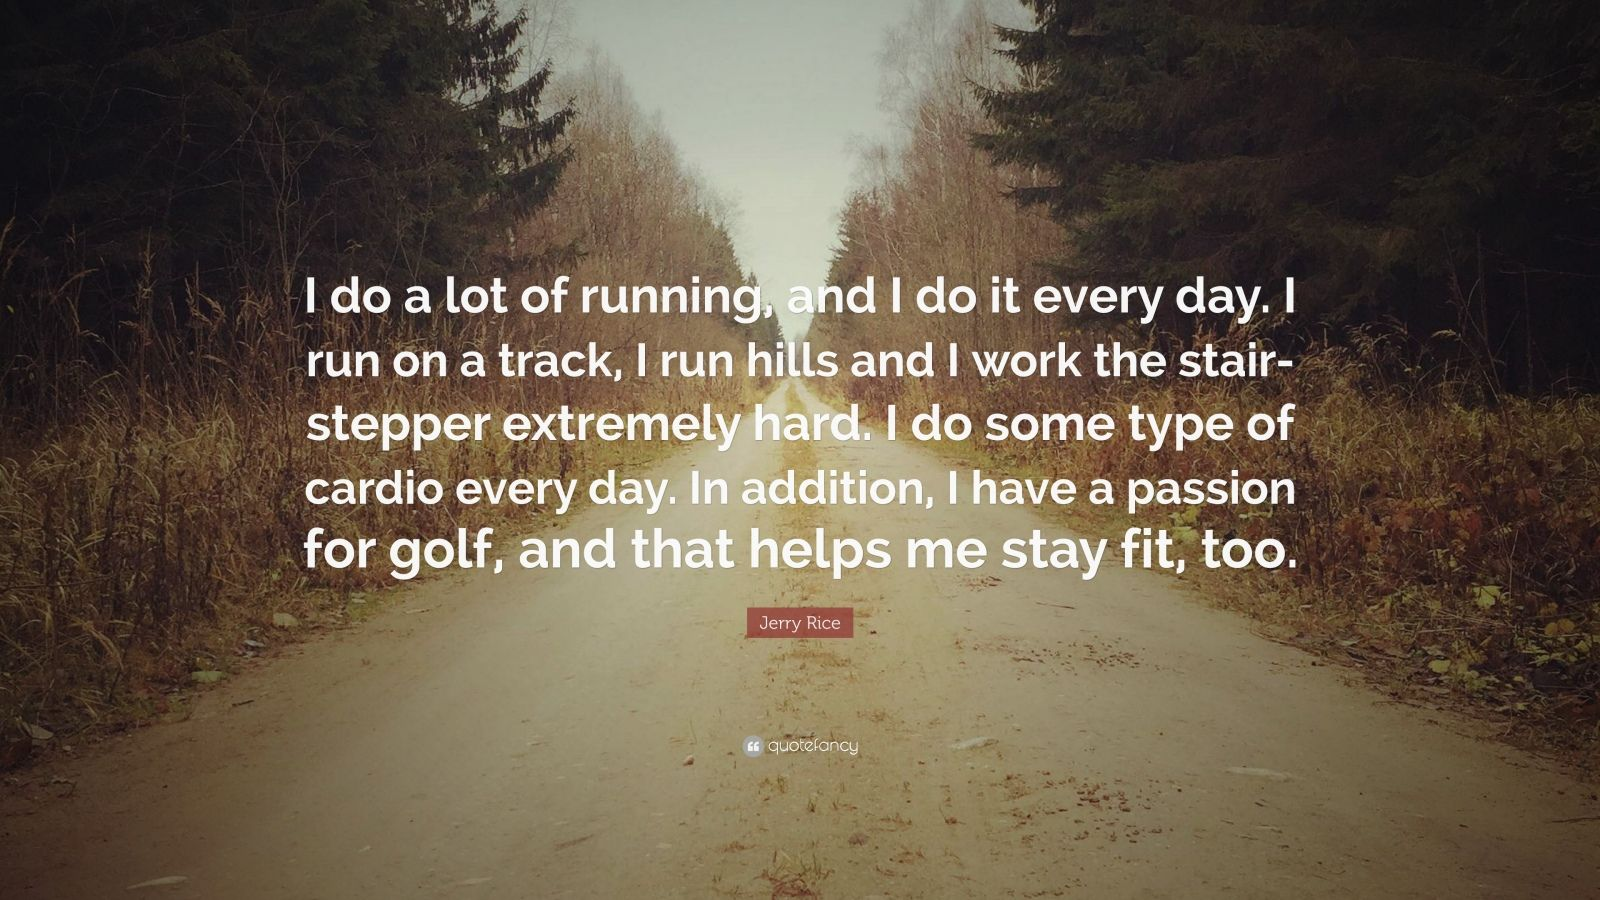 """Jerry Rice Quote: """"I do a lot of running, and I do it every day. I run on a track, I run hills and I work the stair-stepper extremely hard. I do some type of cardio every day. In addition, I have a passion for golf, and that helps me stay fit, too."""""""